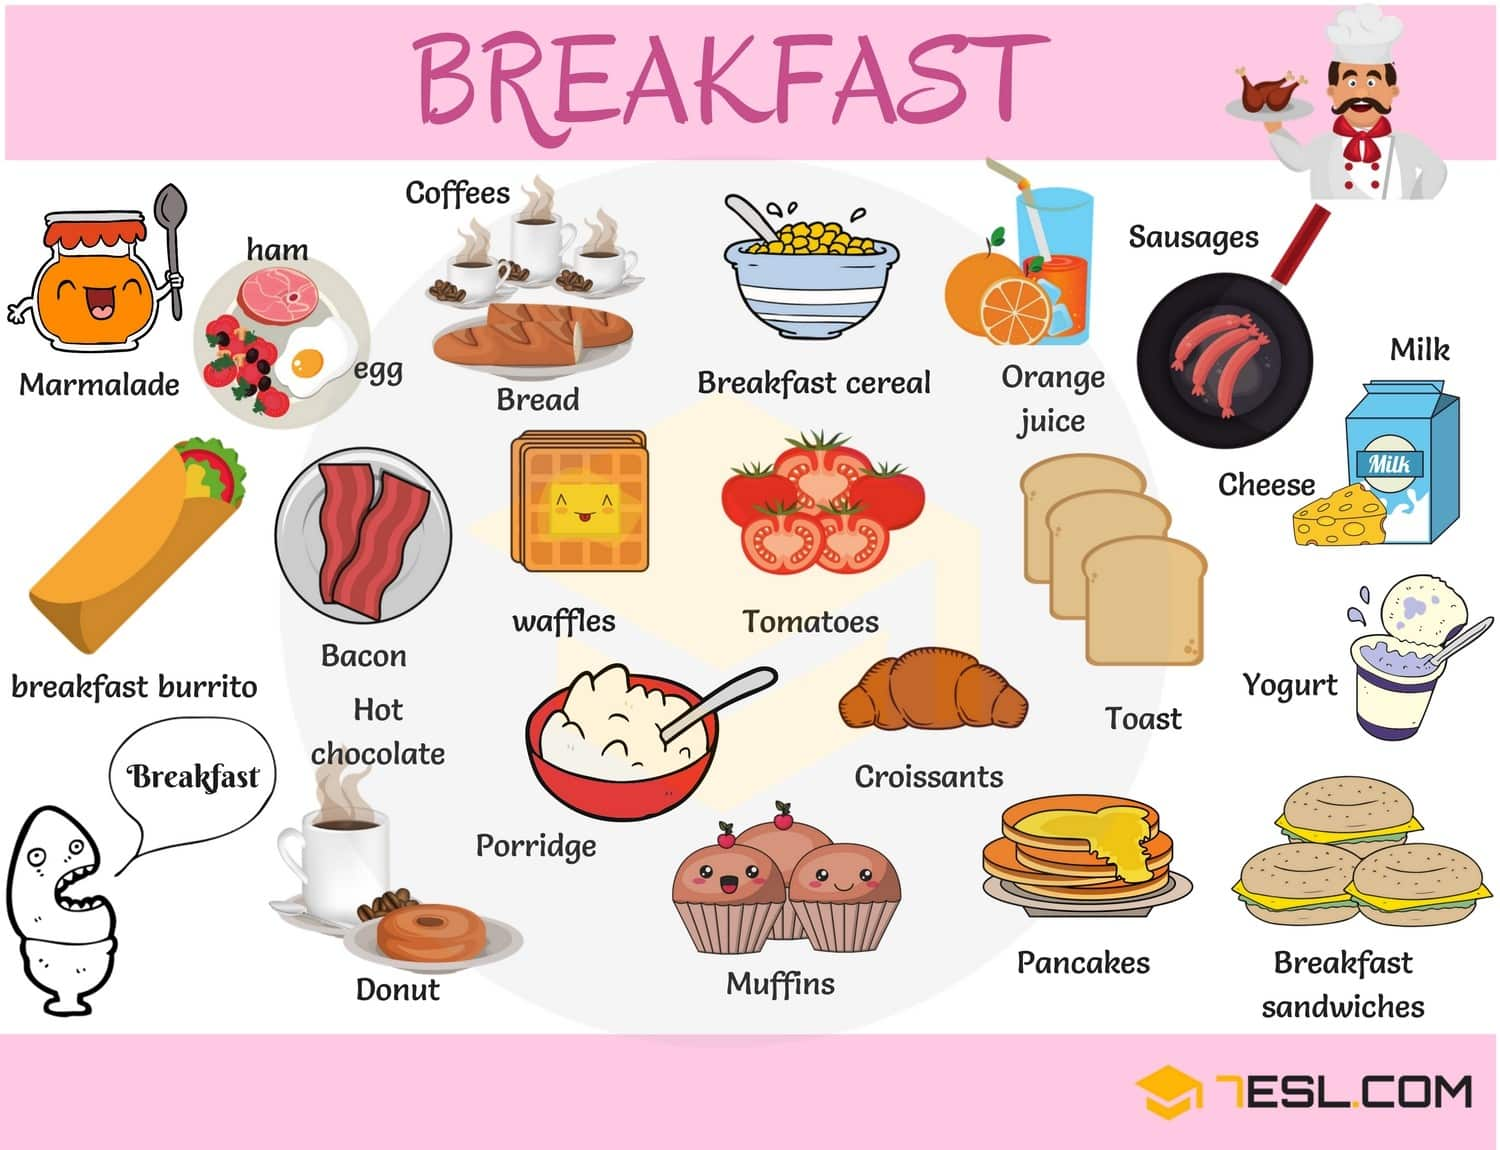 Breakfast Food List: Useful List of Breakfast Foods